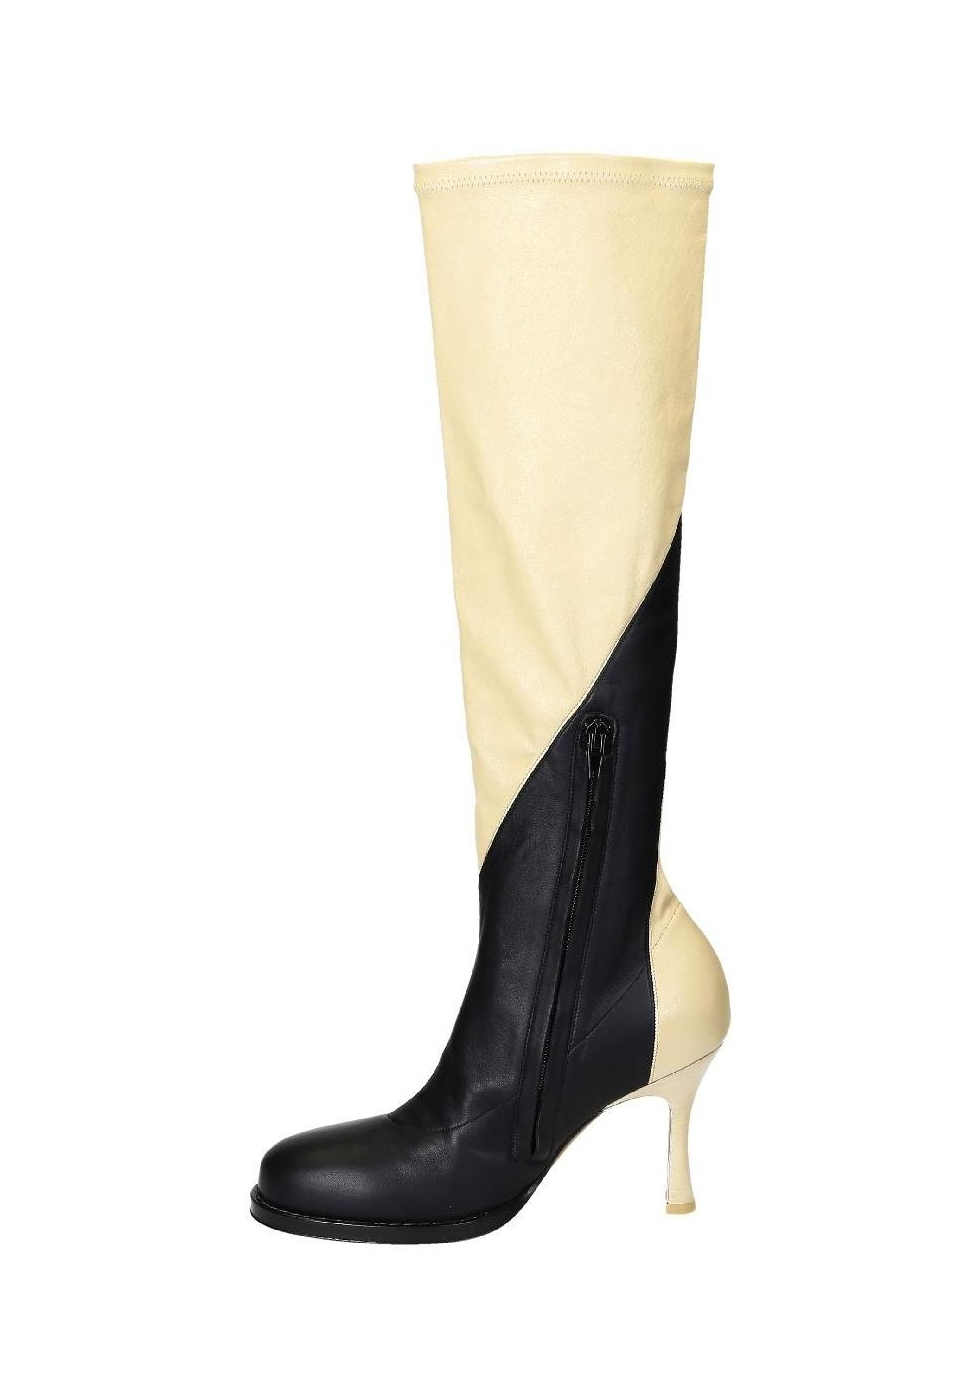 C 233 Line Knee High Boots In Black Off White Soft Leather